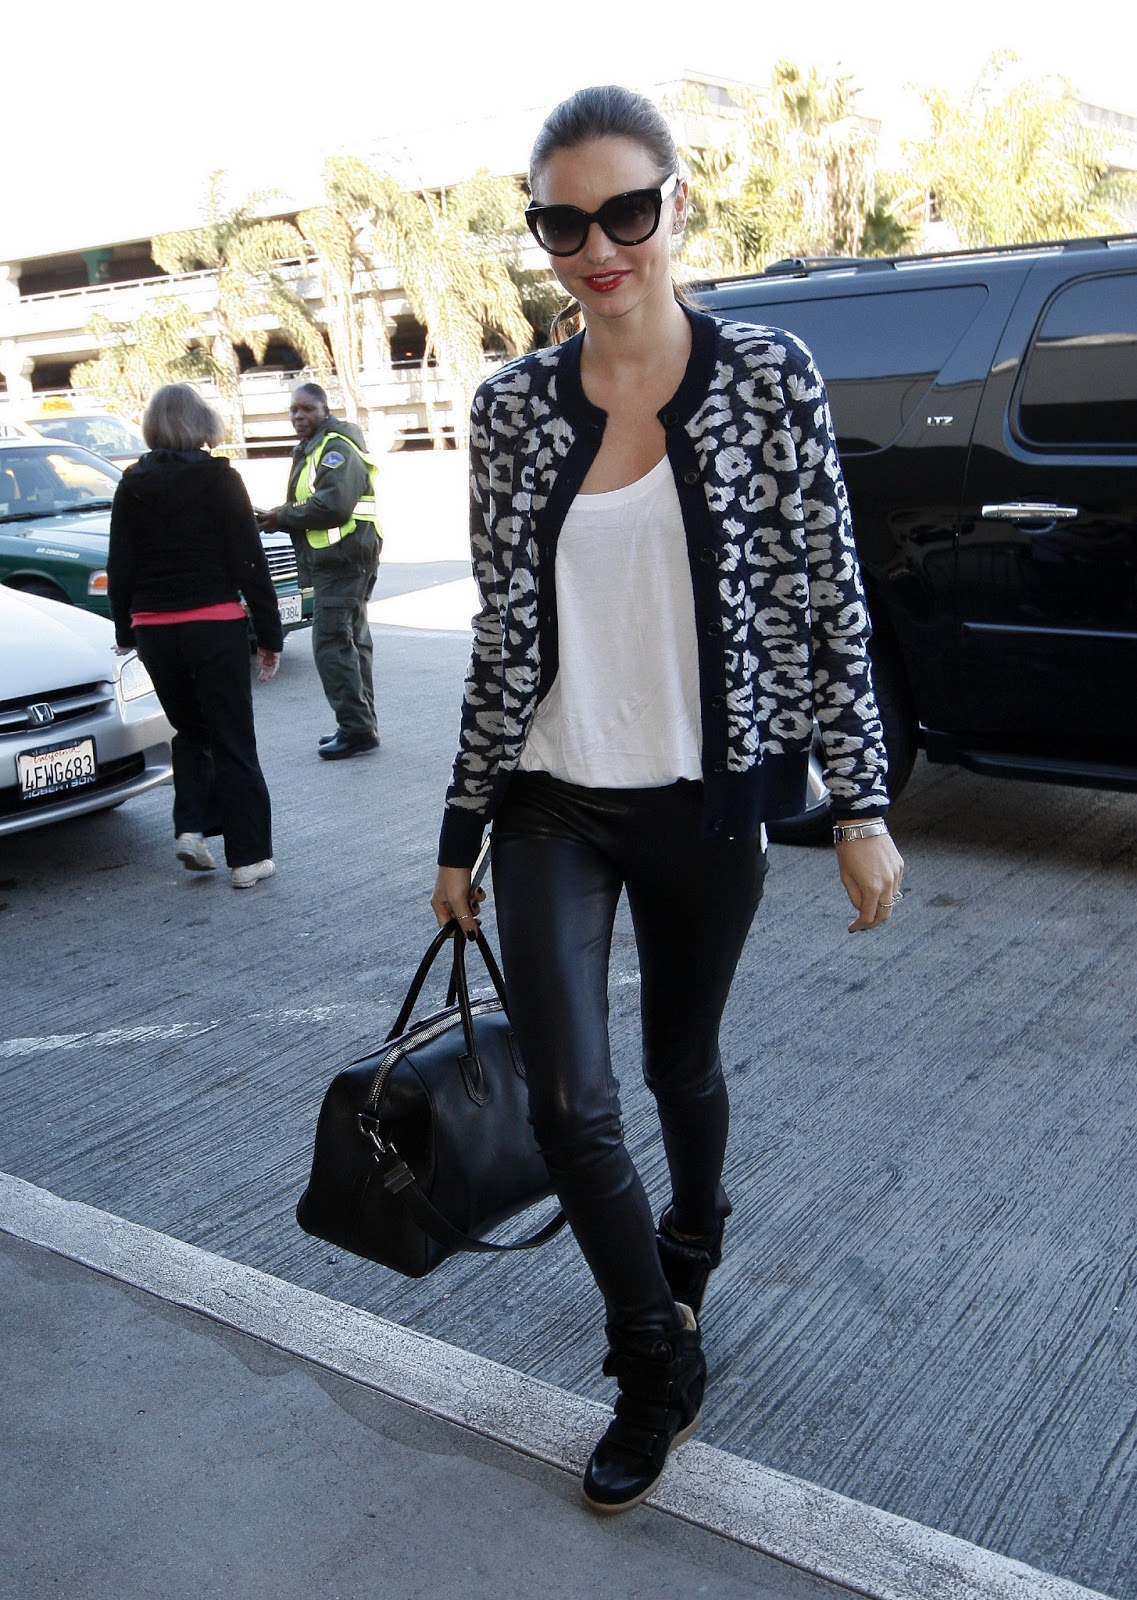 http://2.bp.blogspot.com/-mqtANJlztPU/UQRXApIewjI/AAAAAAAAHcE/H1TEPQ0OY1Y/s1600/70381_Miranda_Kerr_at_LAX_Airport_in_Los_Angeles_CA_January_15_2013_007_122_148lo.jpg